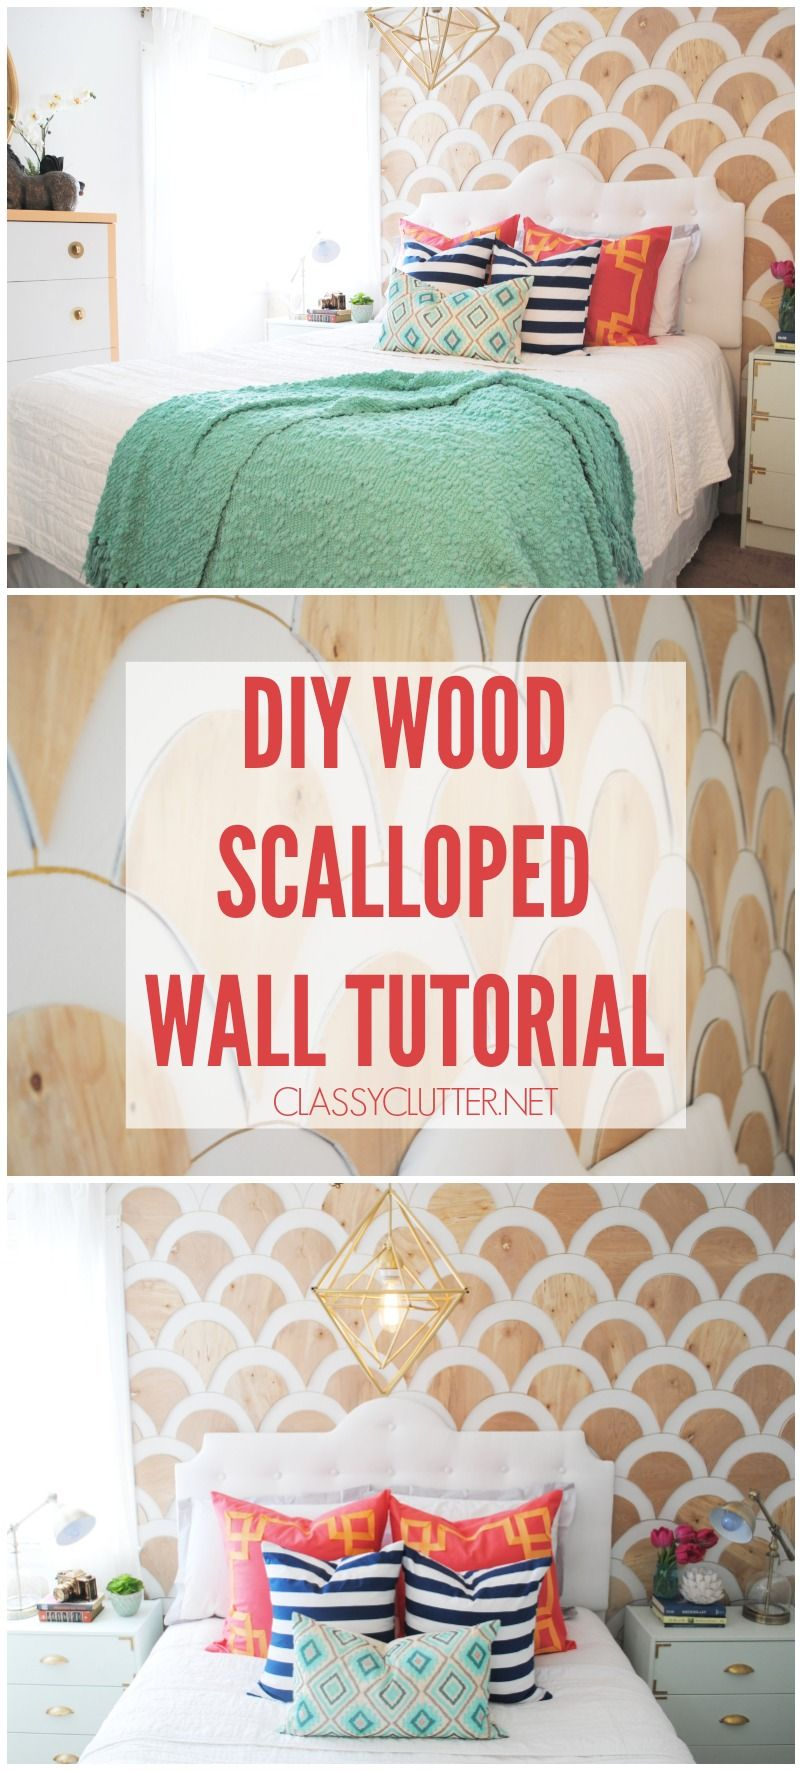 Diy wood scalloped wall tutorial temporary wall for Temporary wood wall